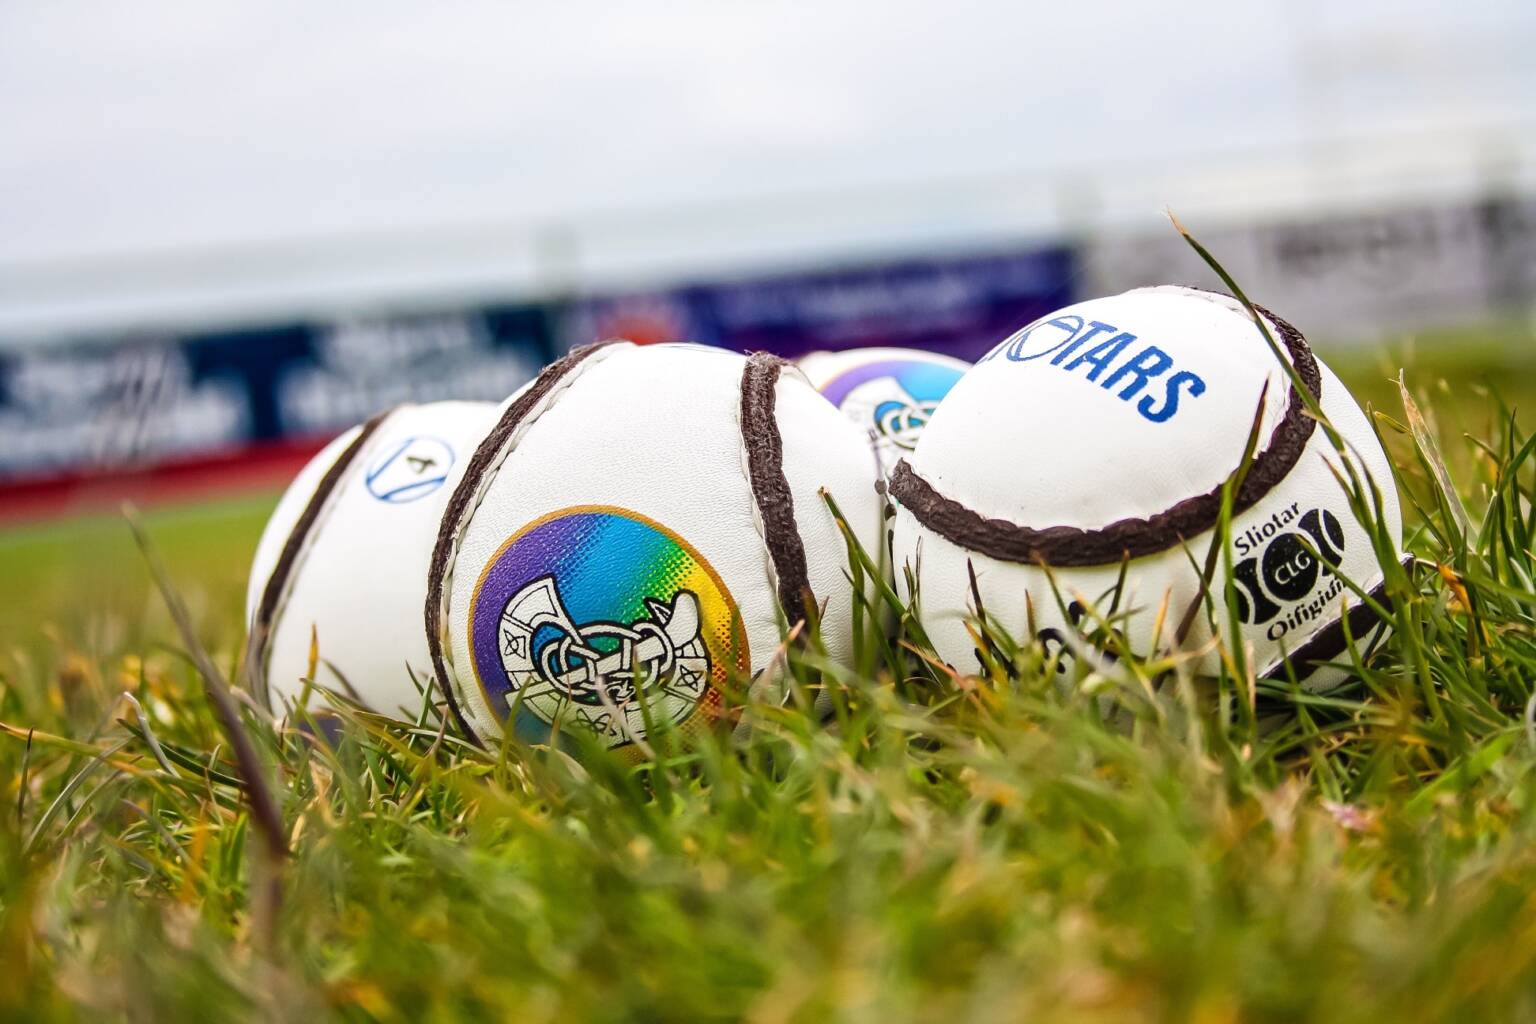 Three sliotars with the Camogie Association crest on them, the 2020 Annual congress took place this weekend where Kildare native Hilda Breslin was elected Uachtarán Tofa